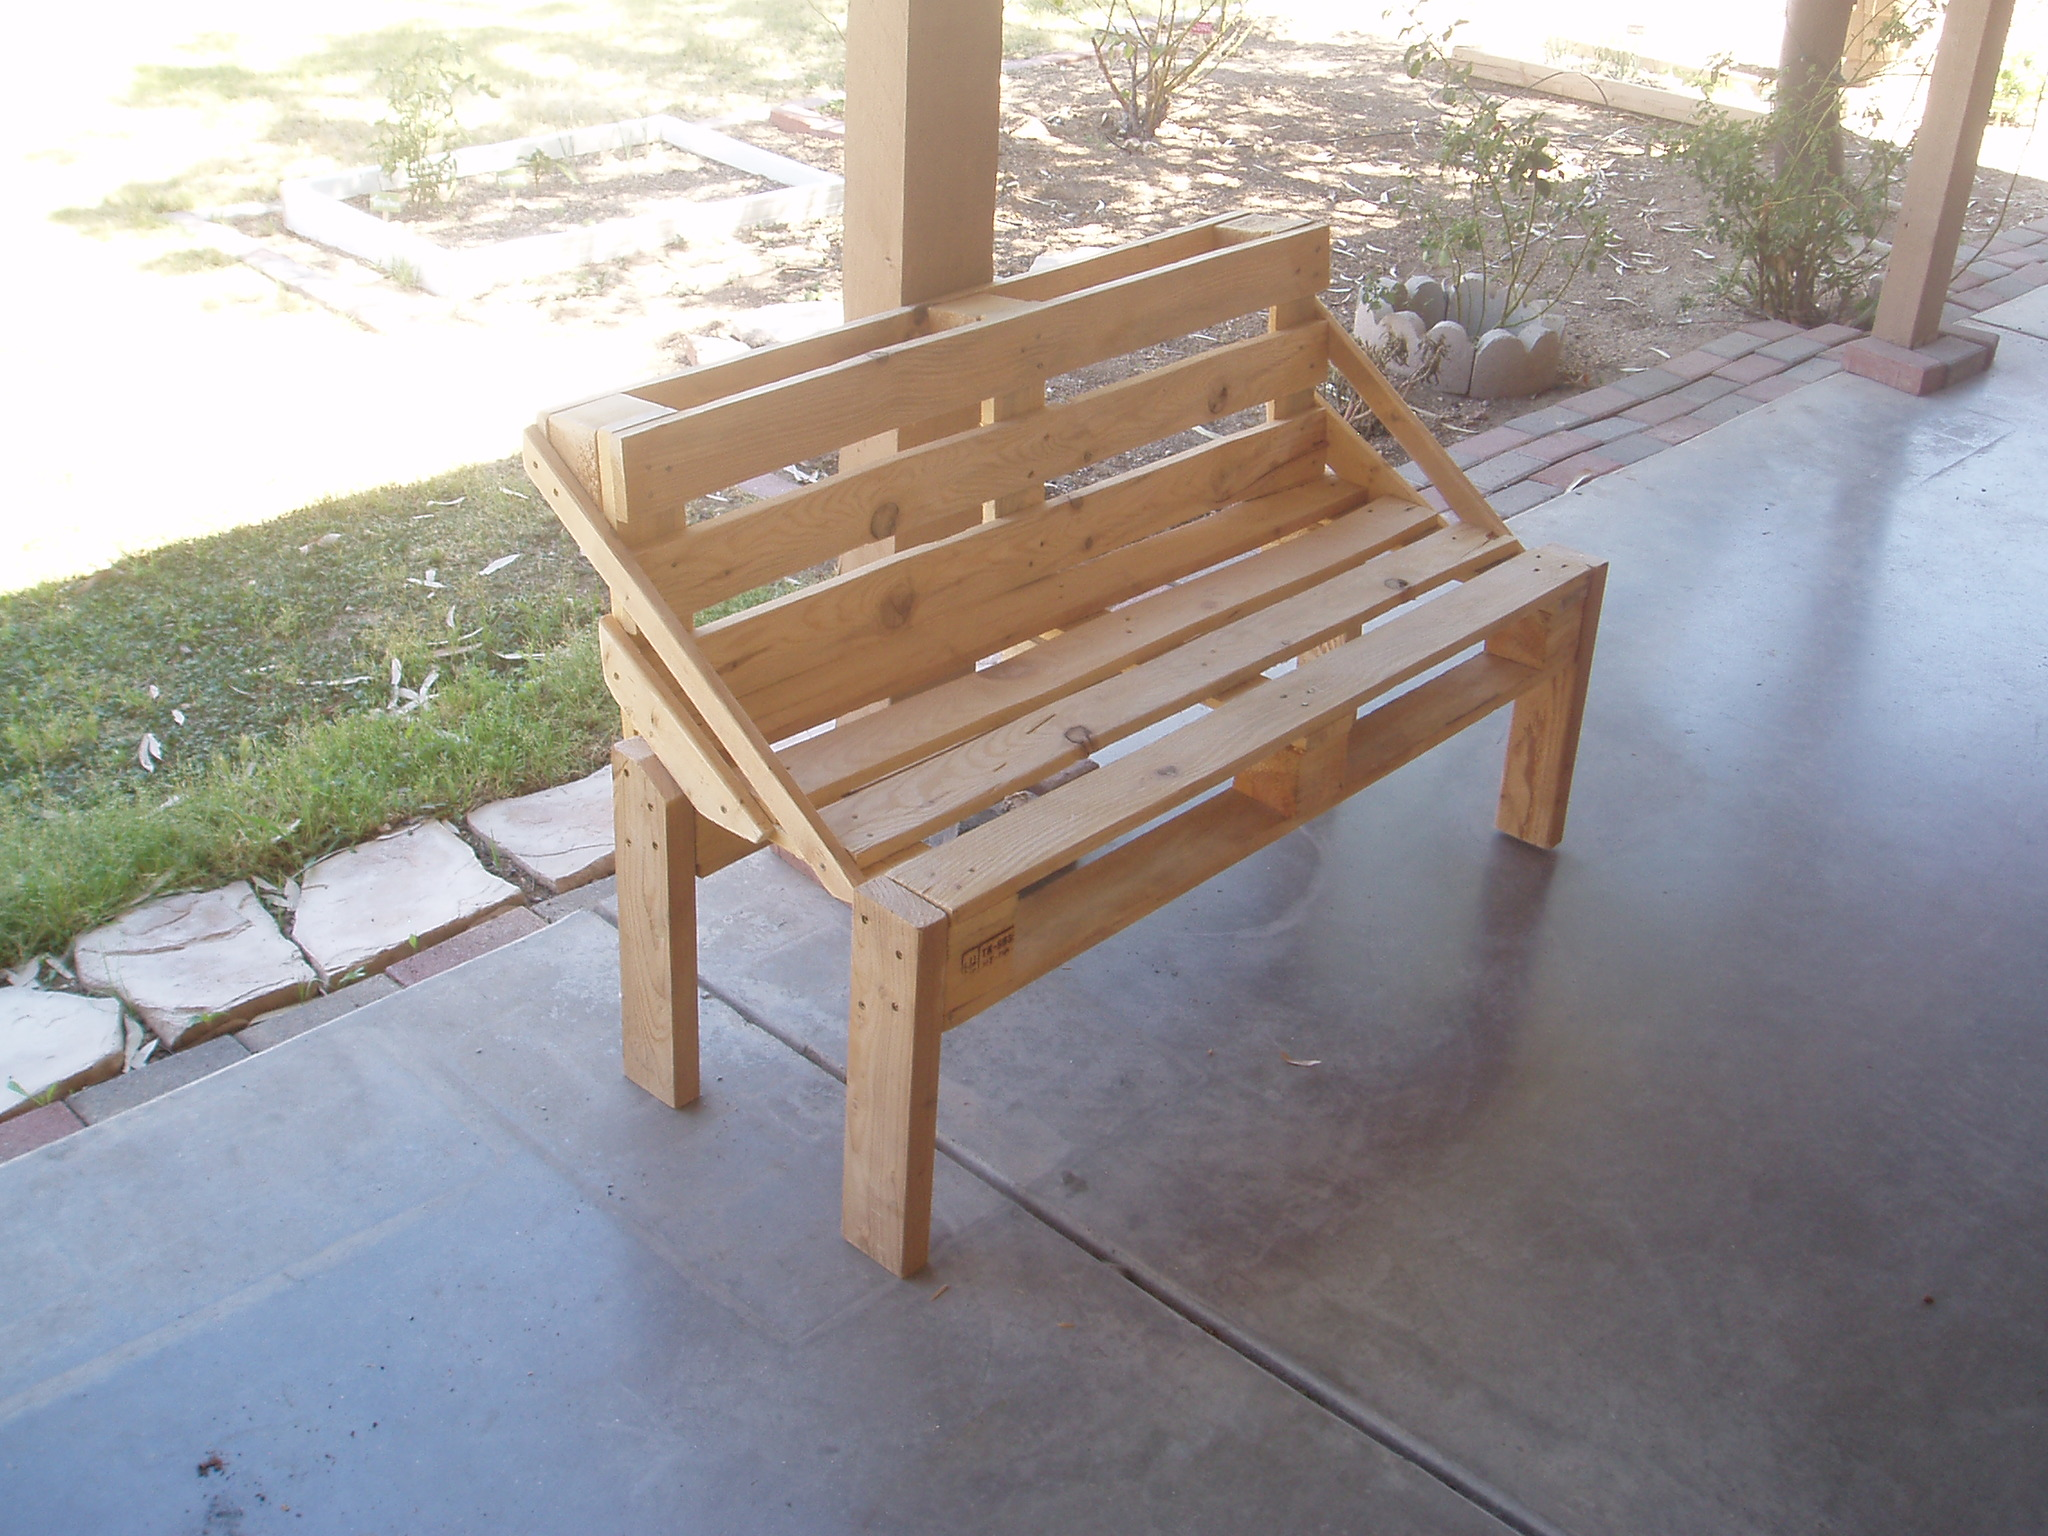 Pallet Bench Project 6 Steps With Pictures Instructables